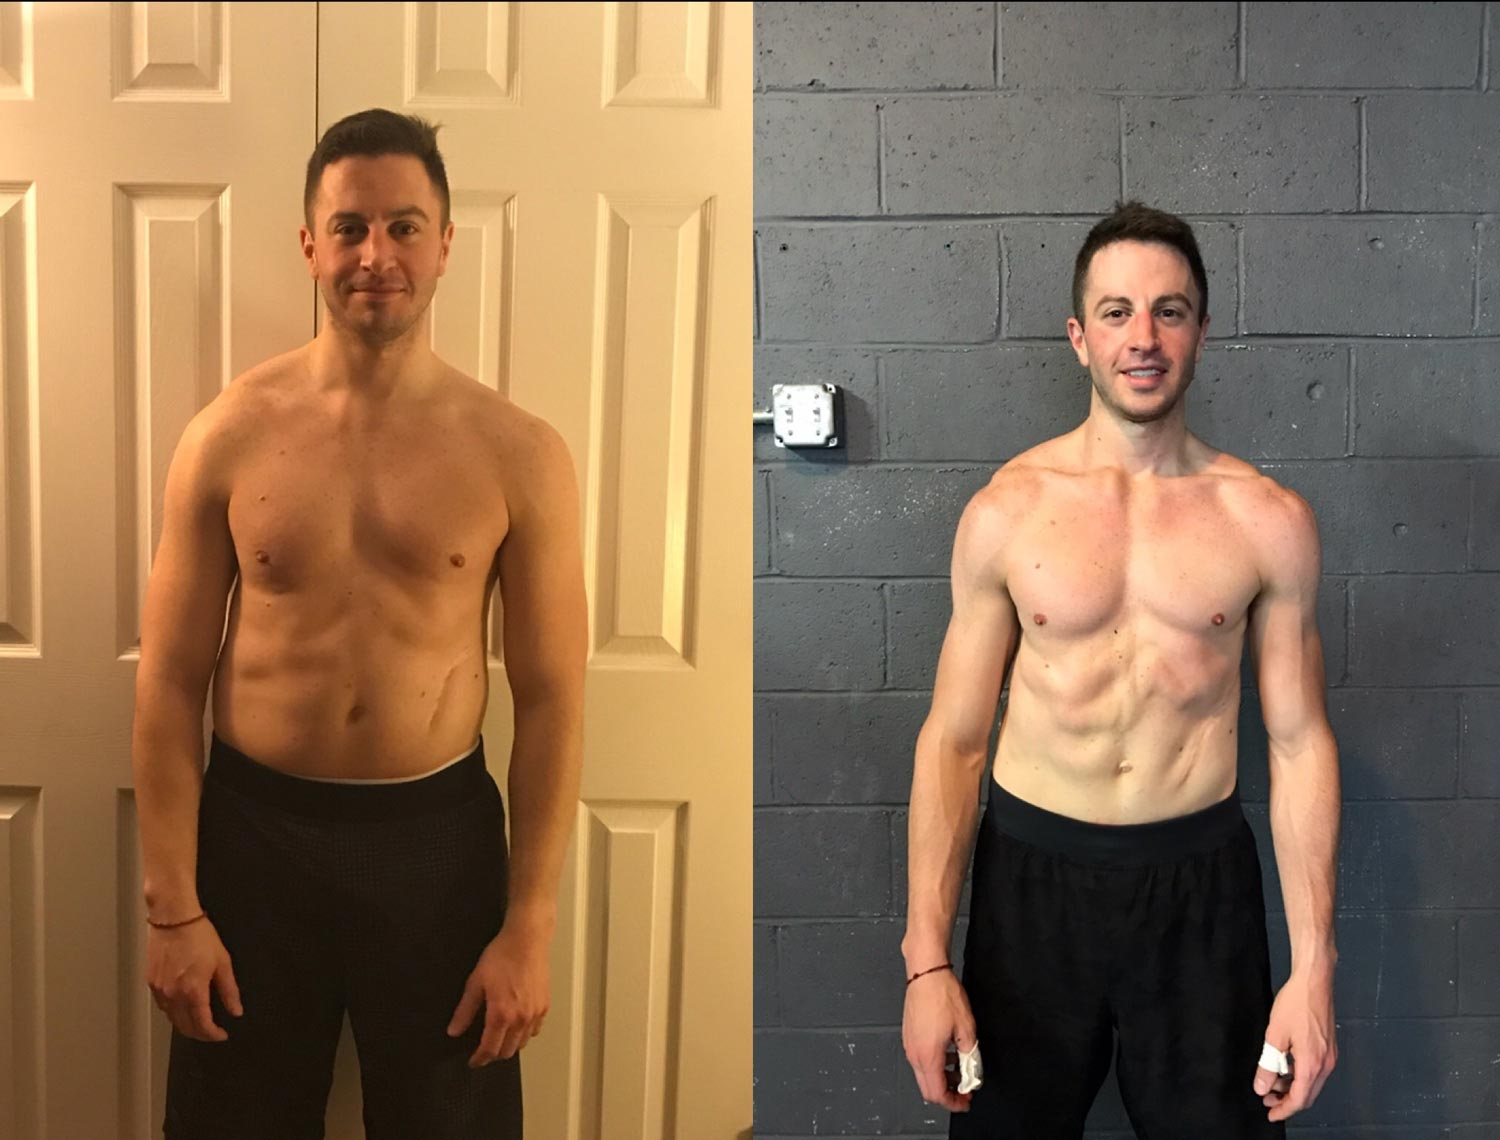 Daniel Kupratis before and after weight loss